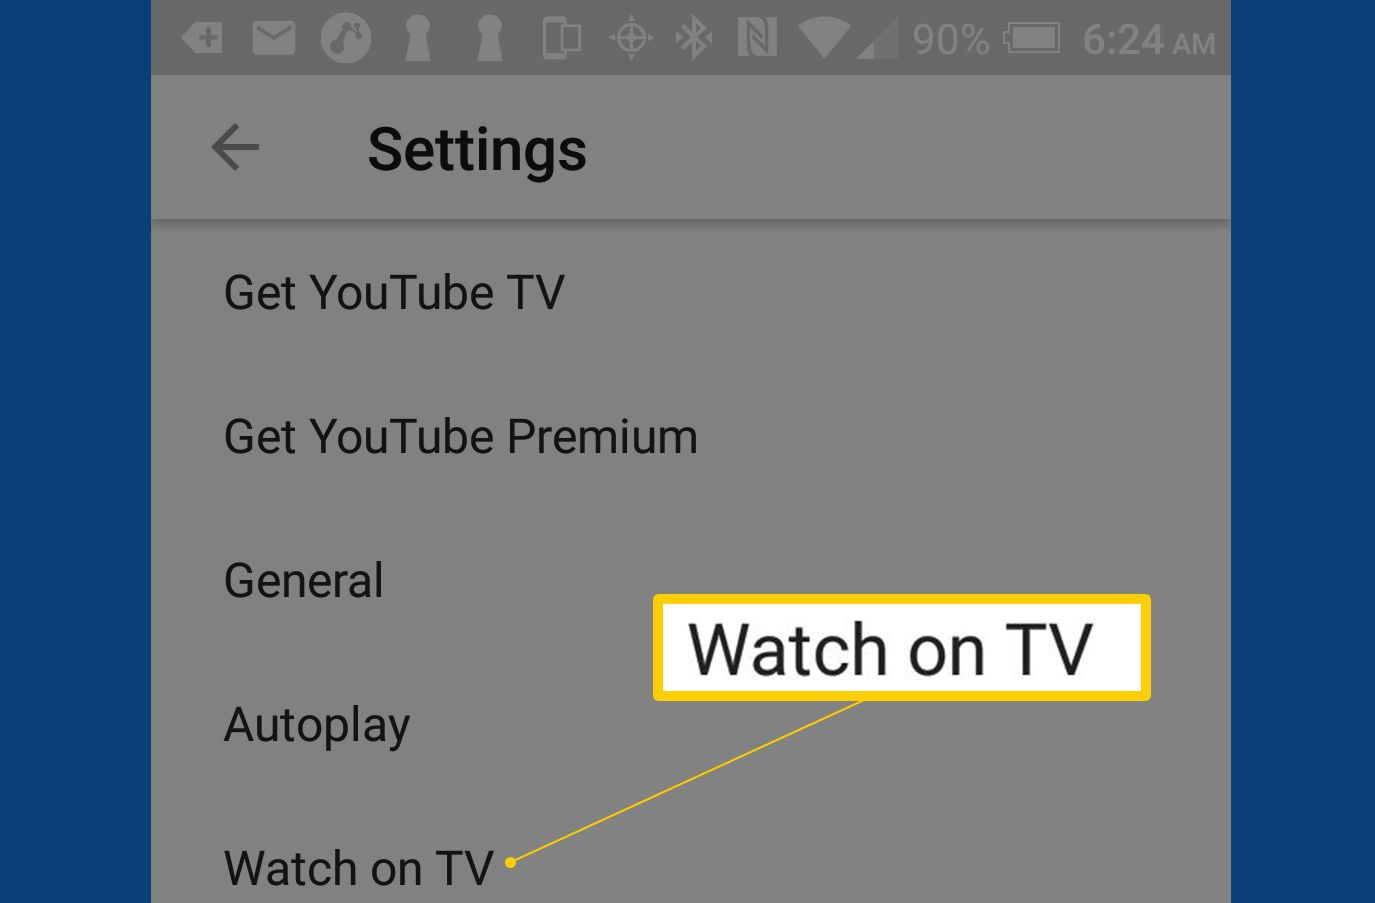 The Watch on TV option